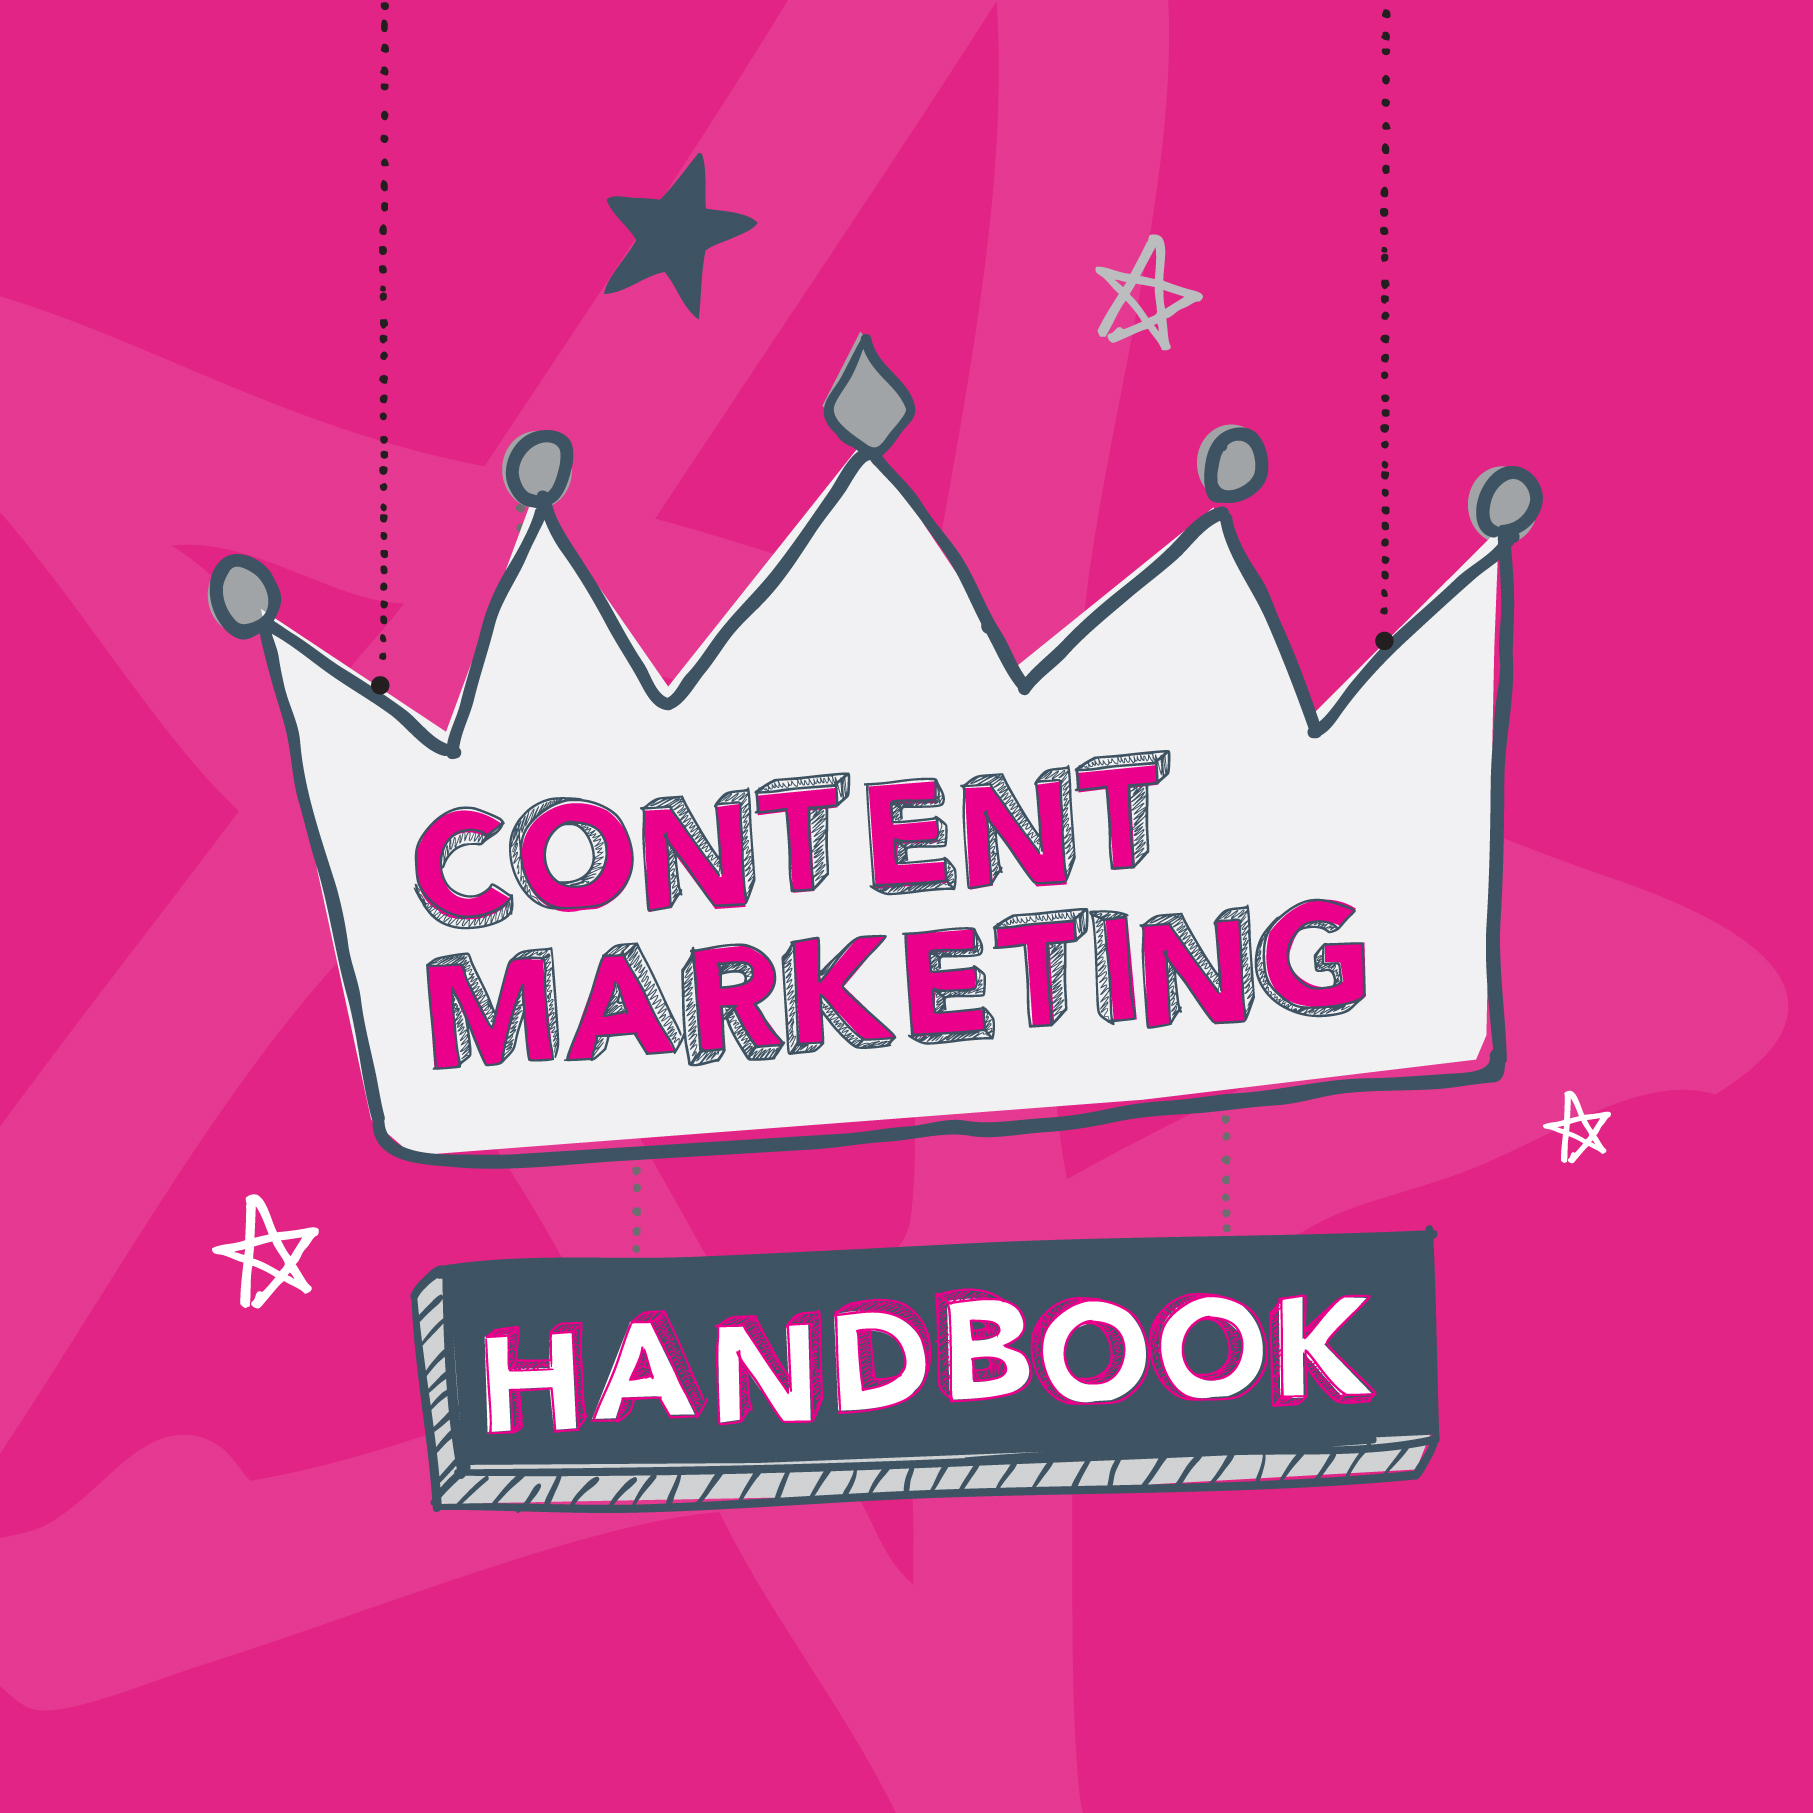 content marketing services handbook icon